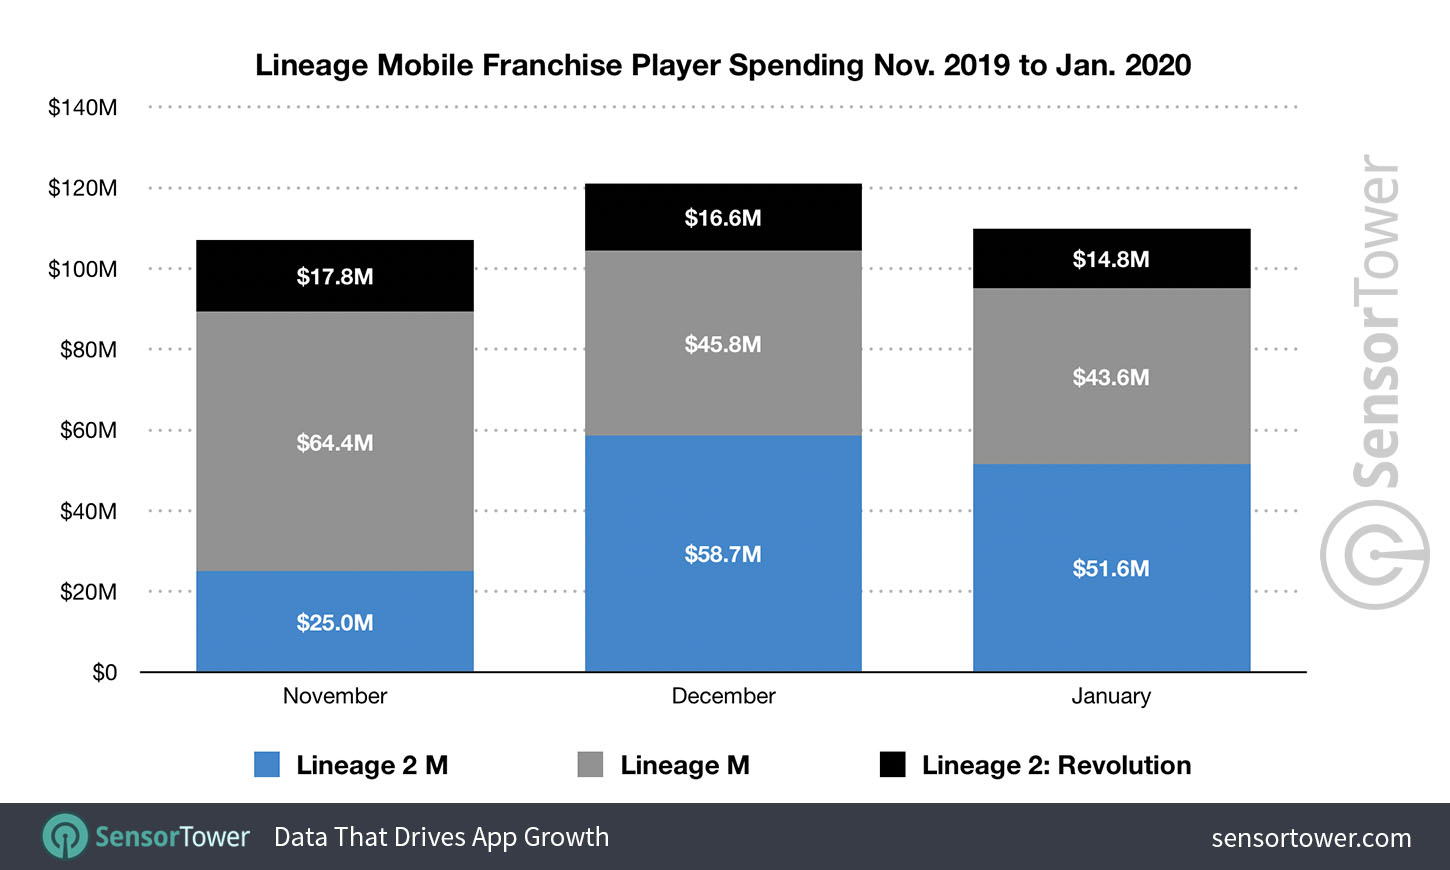 lineage-mobile-franchise-player-spending-nov-2019-to-jan-2020